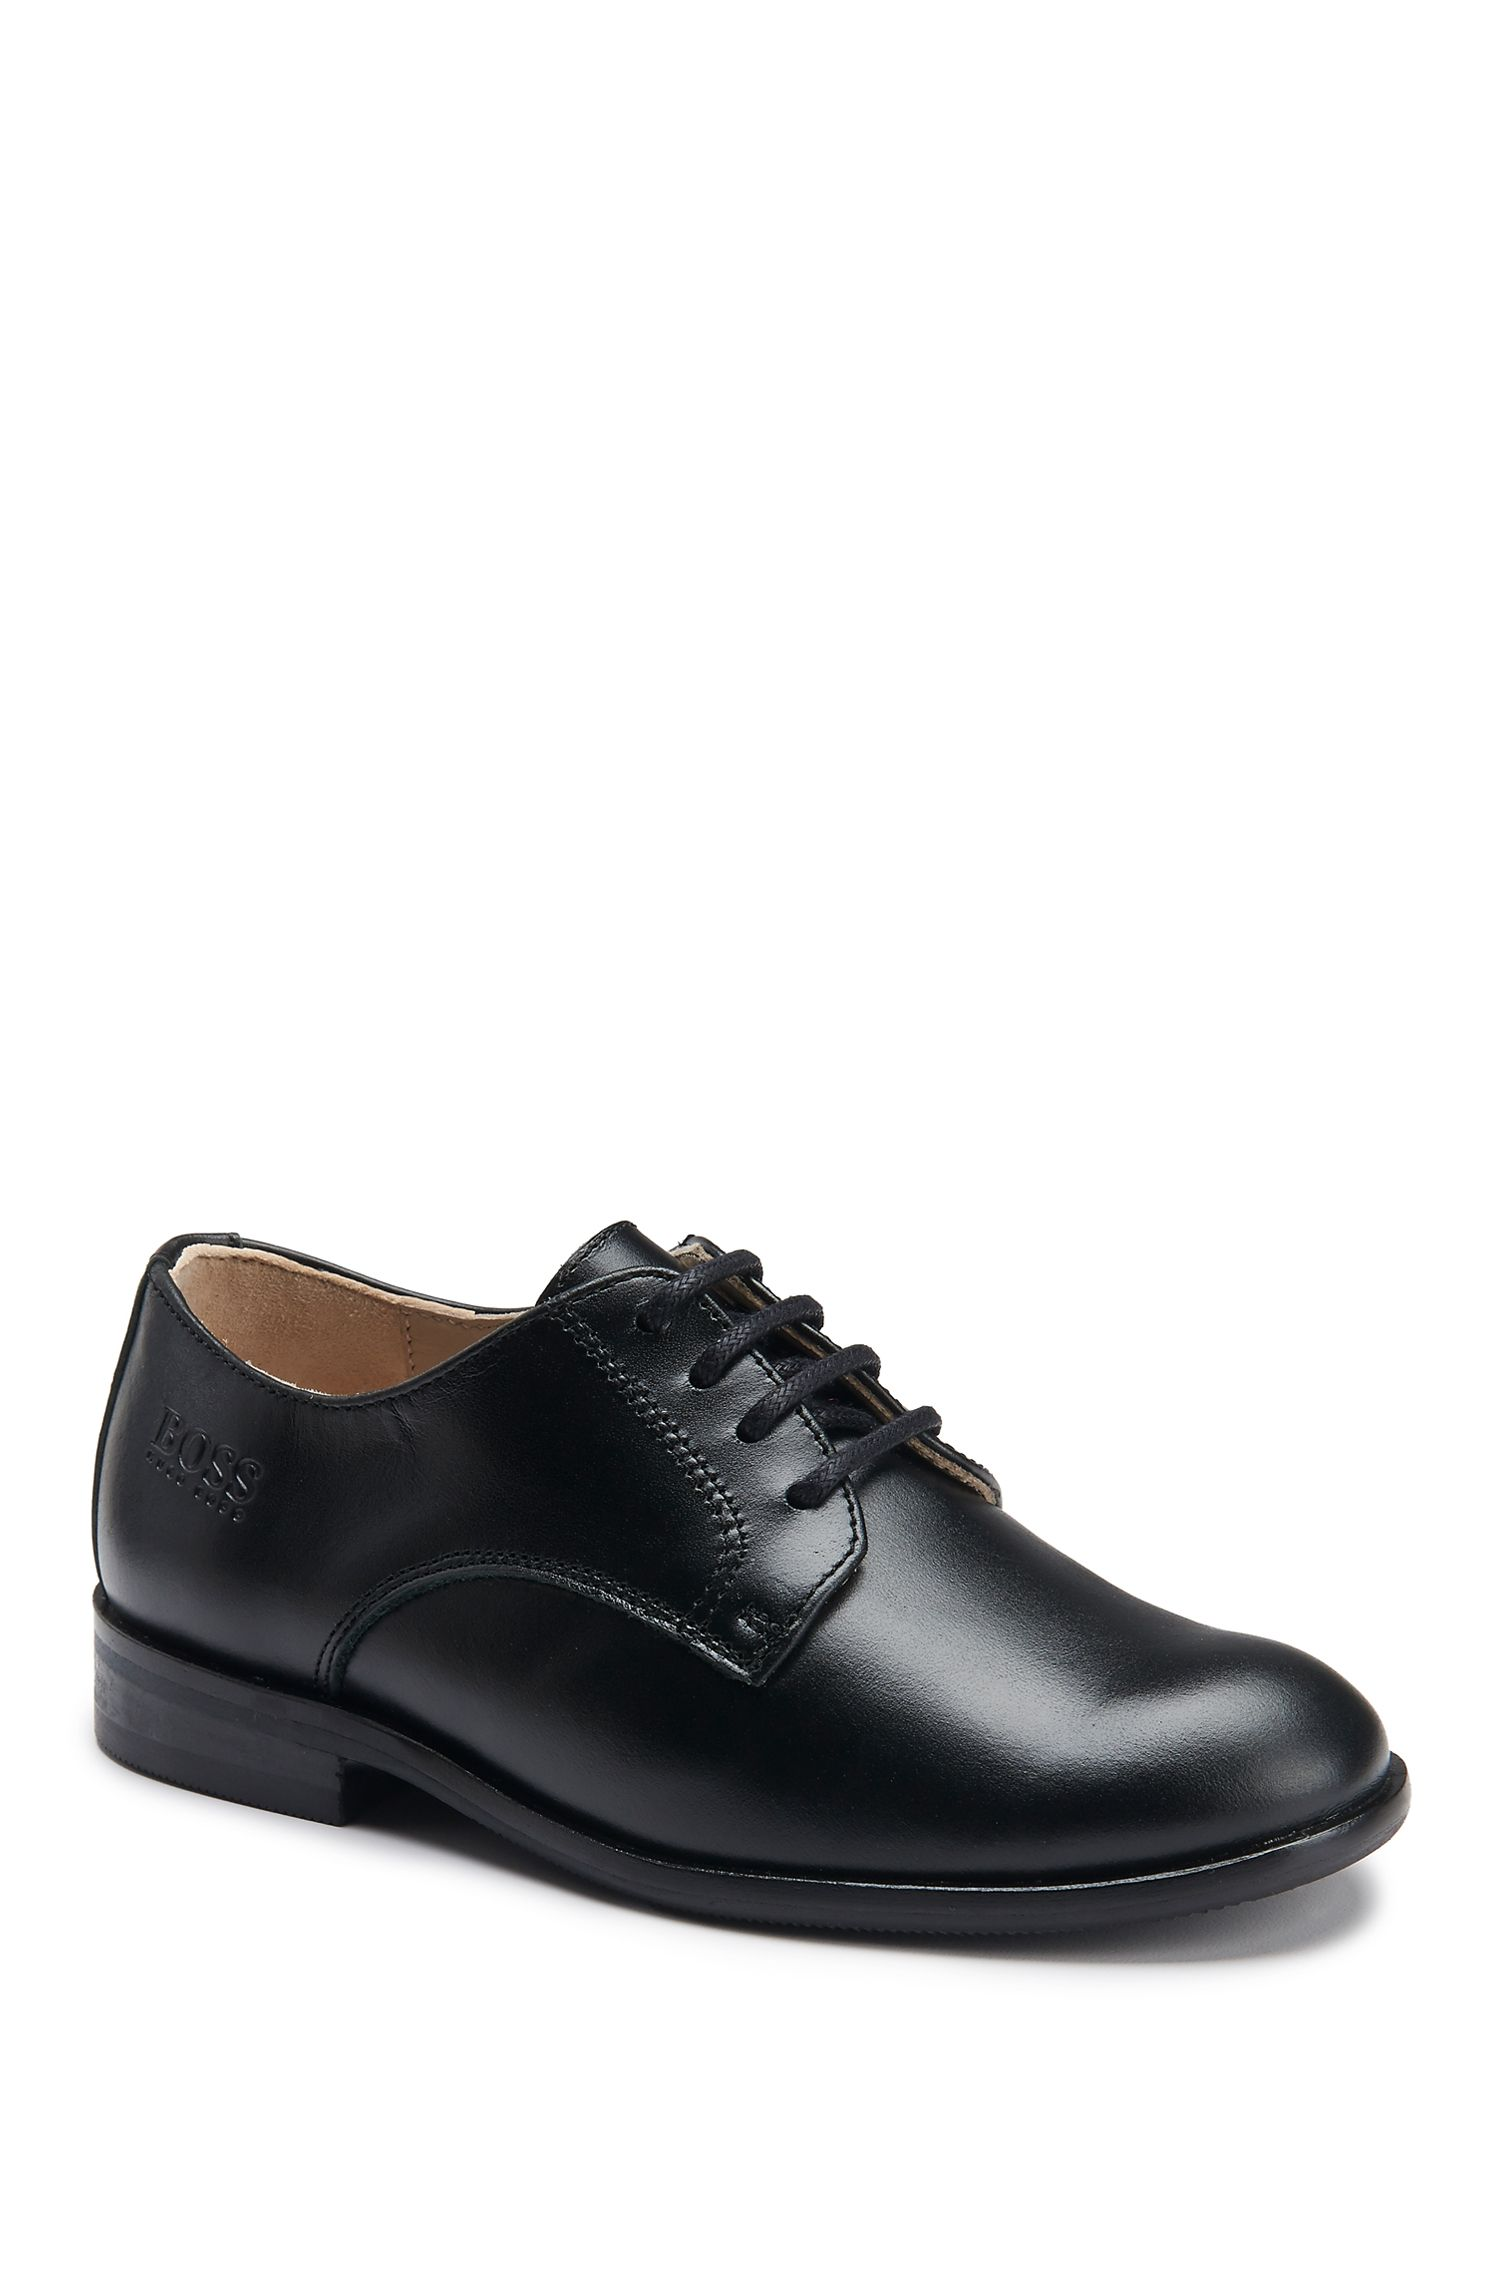 Kids' Leather Derby Shoe | J29V15